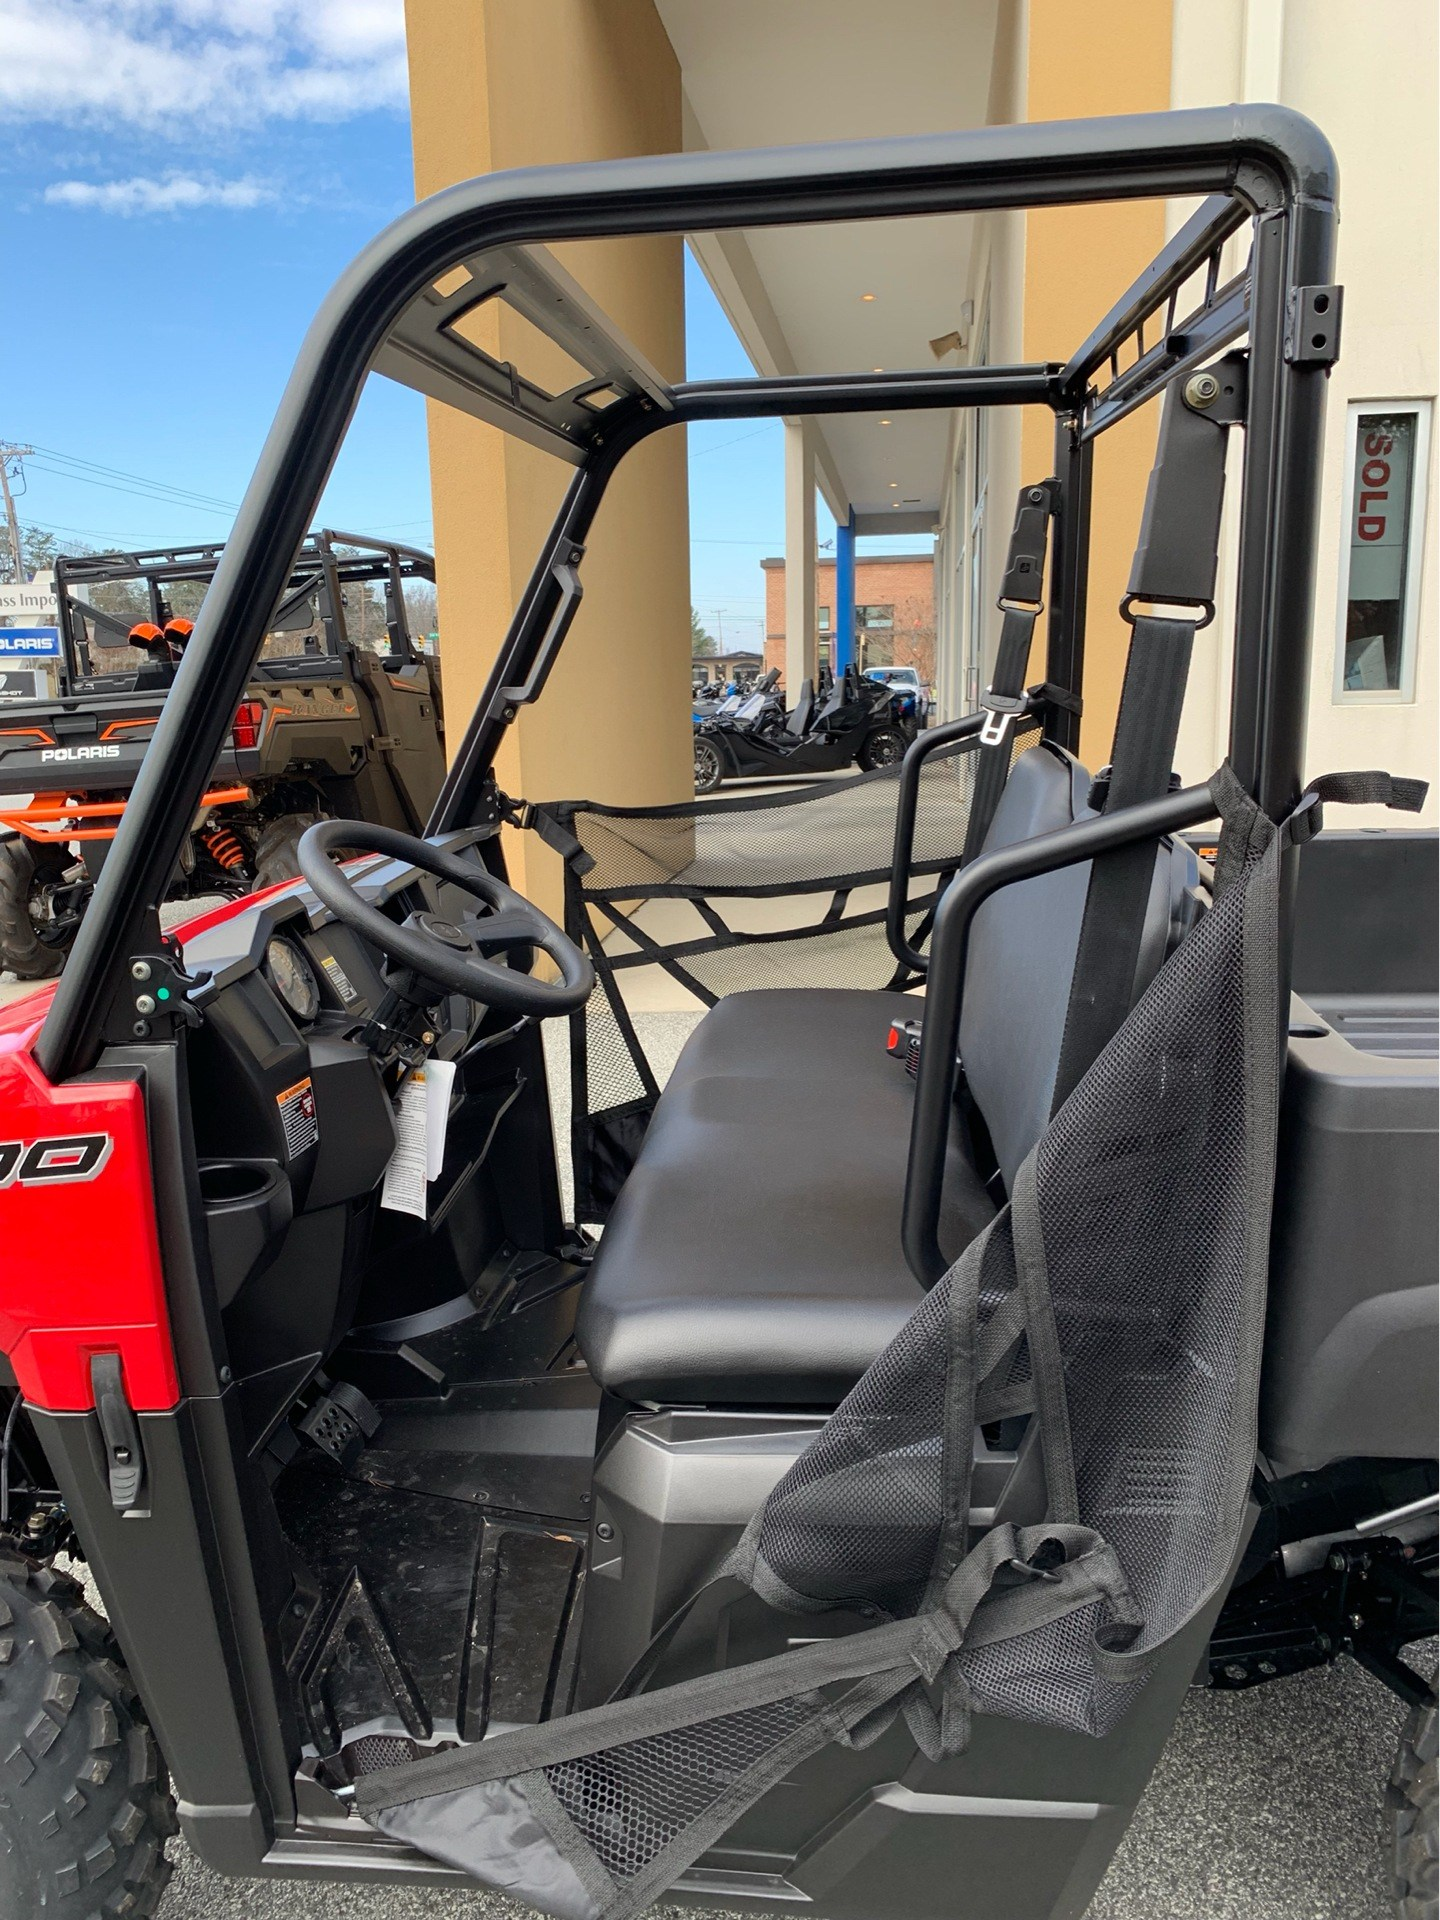 2019 Polaris Ranger 500 in High Point, North Carolina - Photo 11